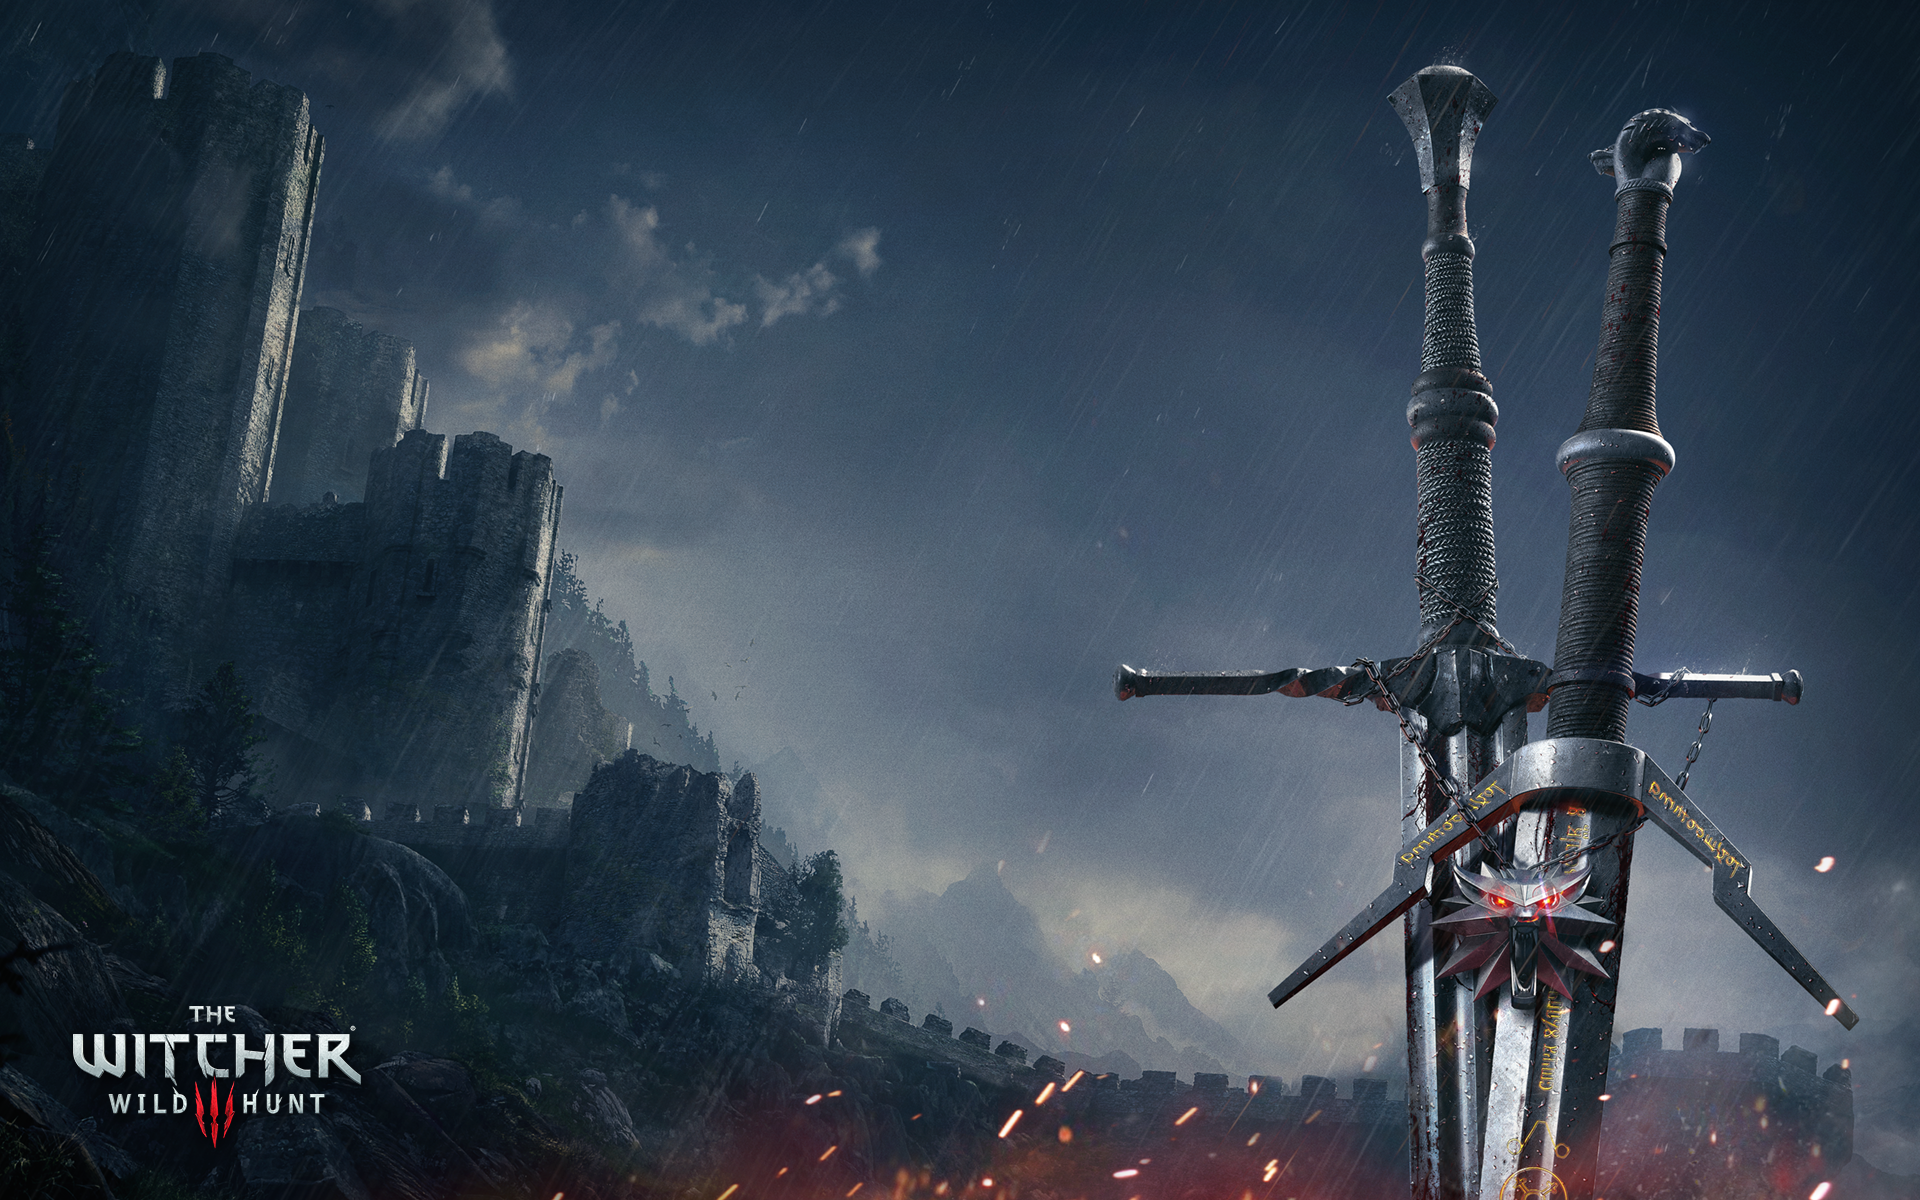 witcher3_en_wallpaper_wallpaper_9_1920x1200_1433245987.png ...